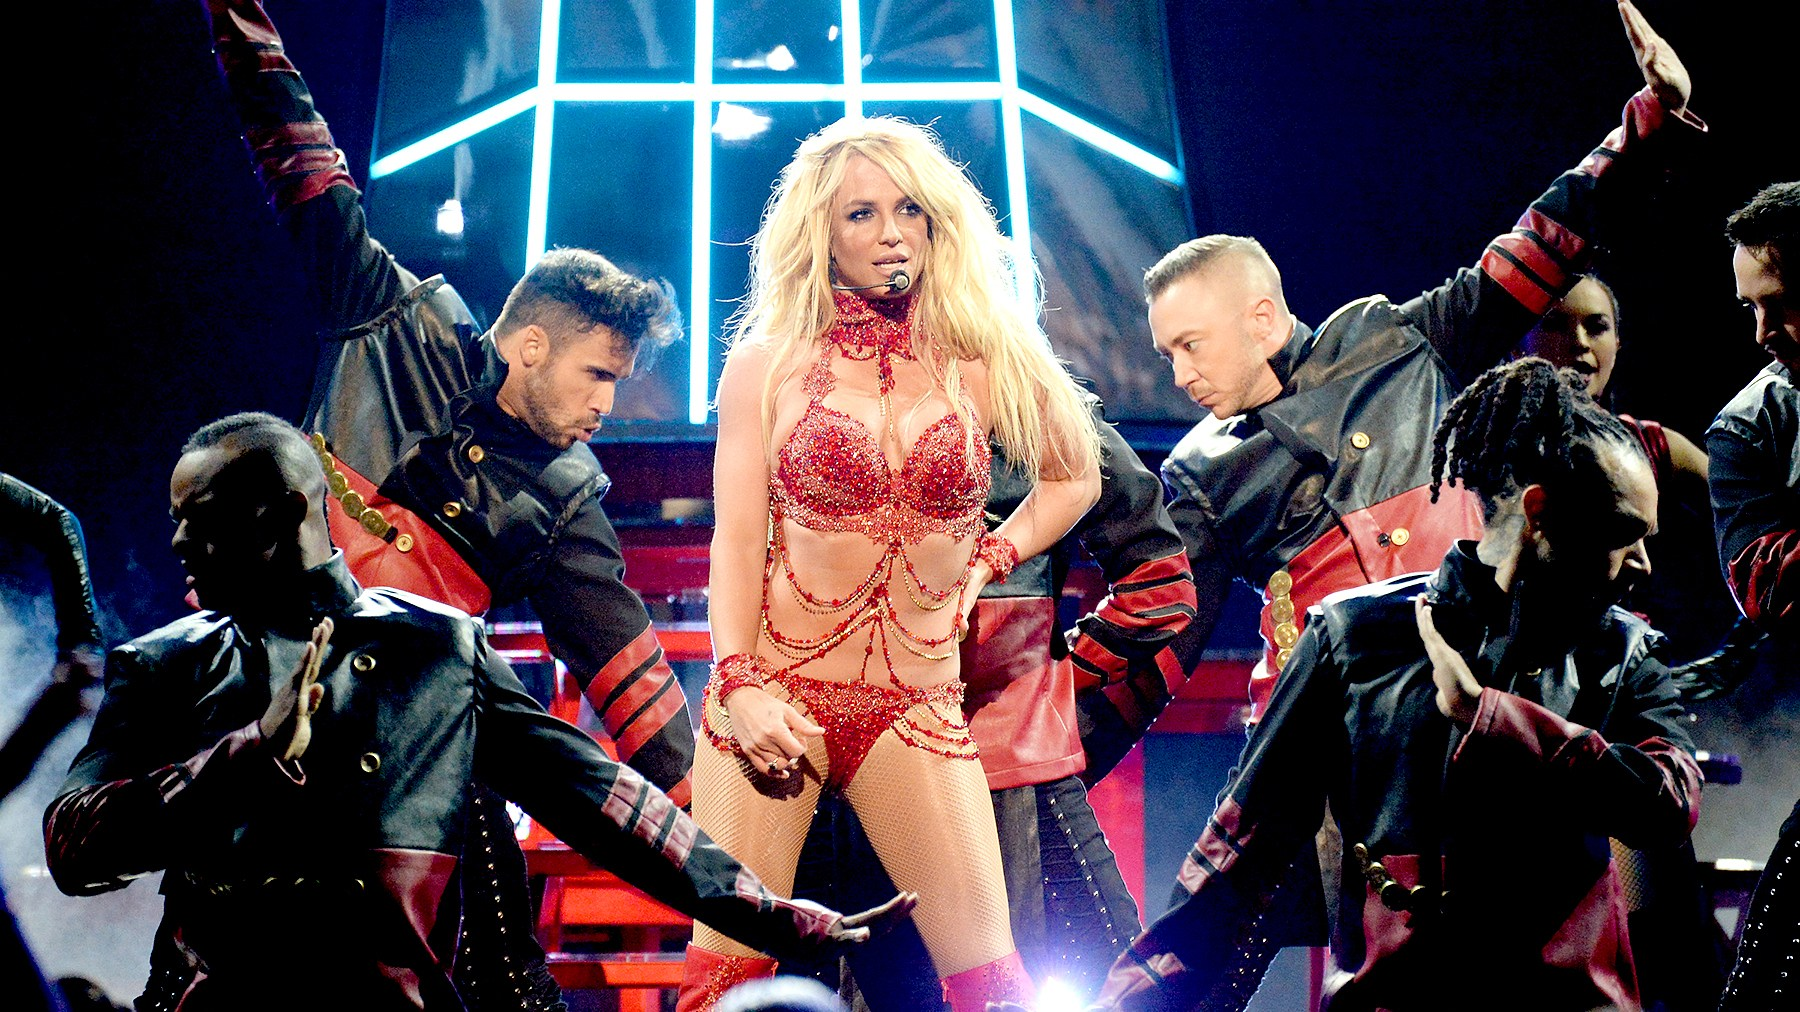 Britney Spears performs on stage during the 2016 Billboard Music Awards at T-Mobile Arena on May 22, 2016, in Las Vegas.